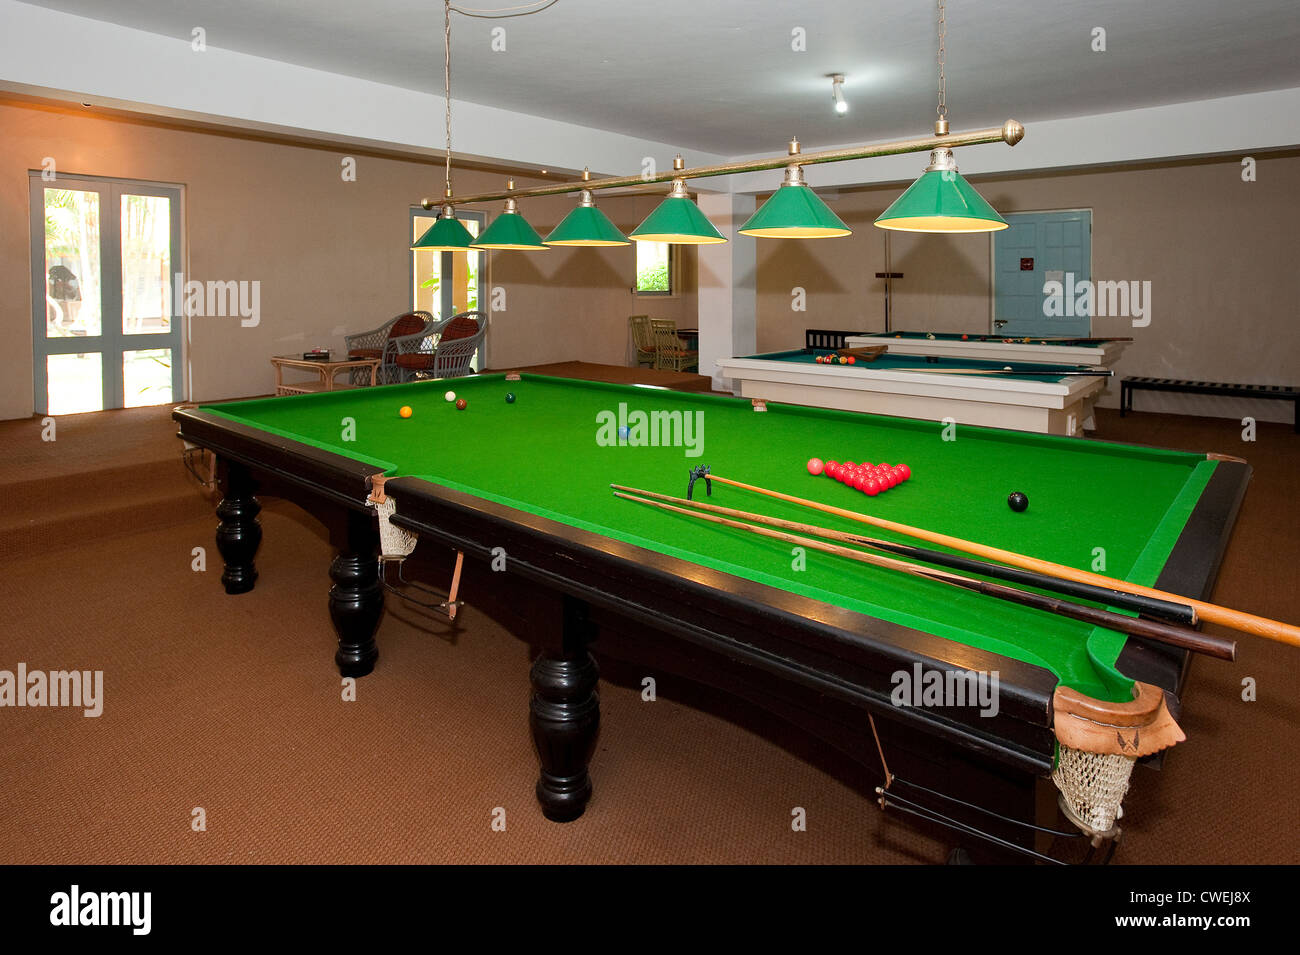 Full size Snooker Table at Club Palm Bay Hotel, Marawila, Sri ...